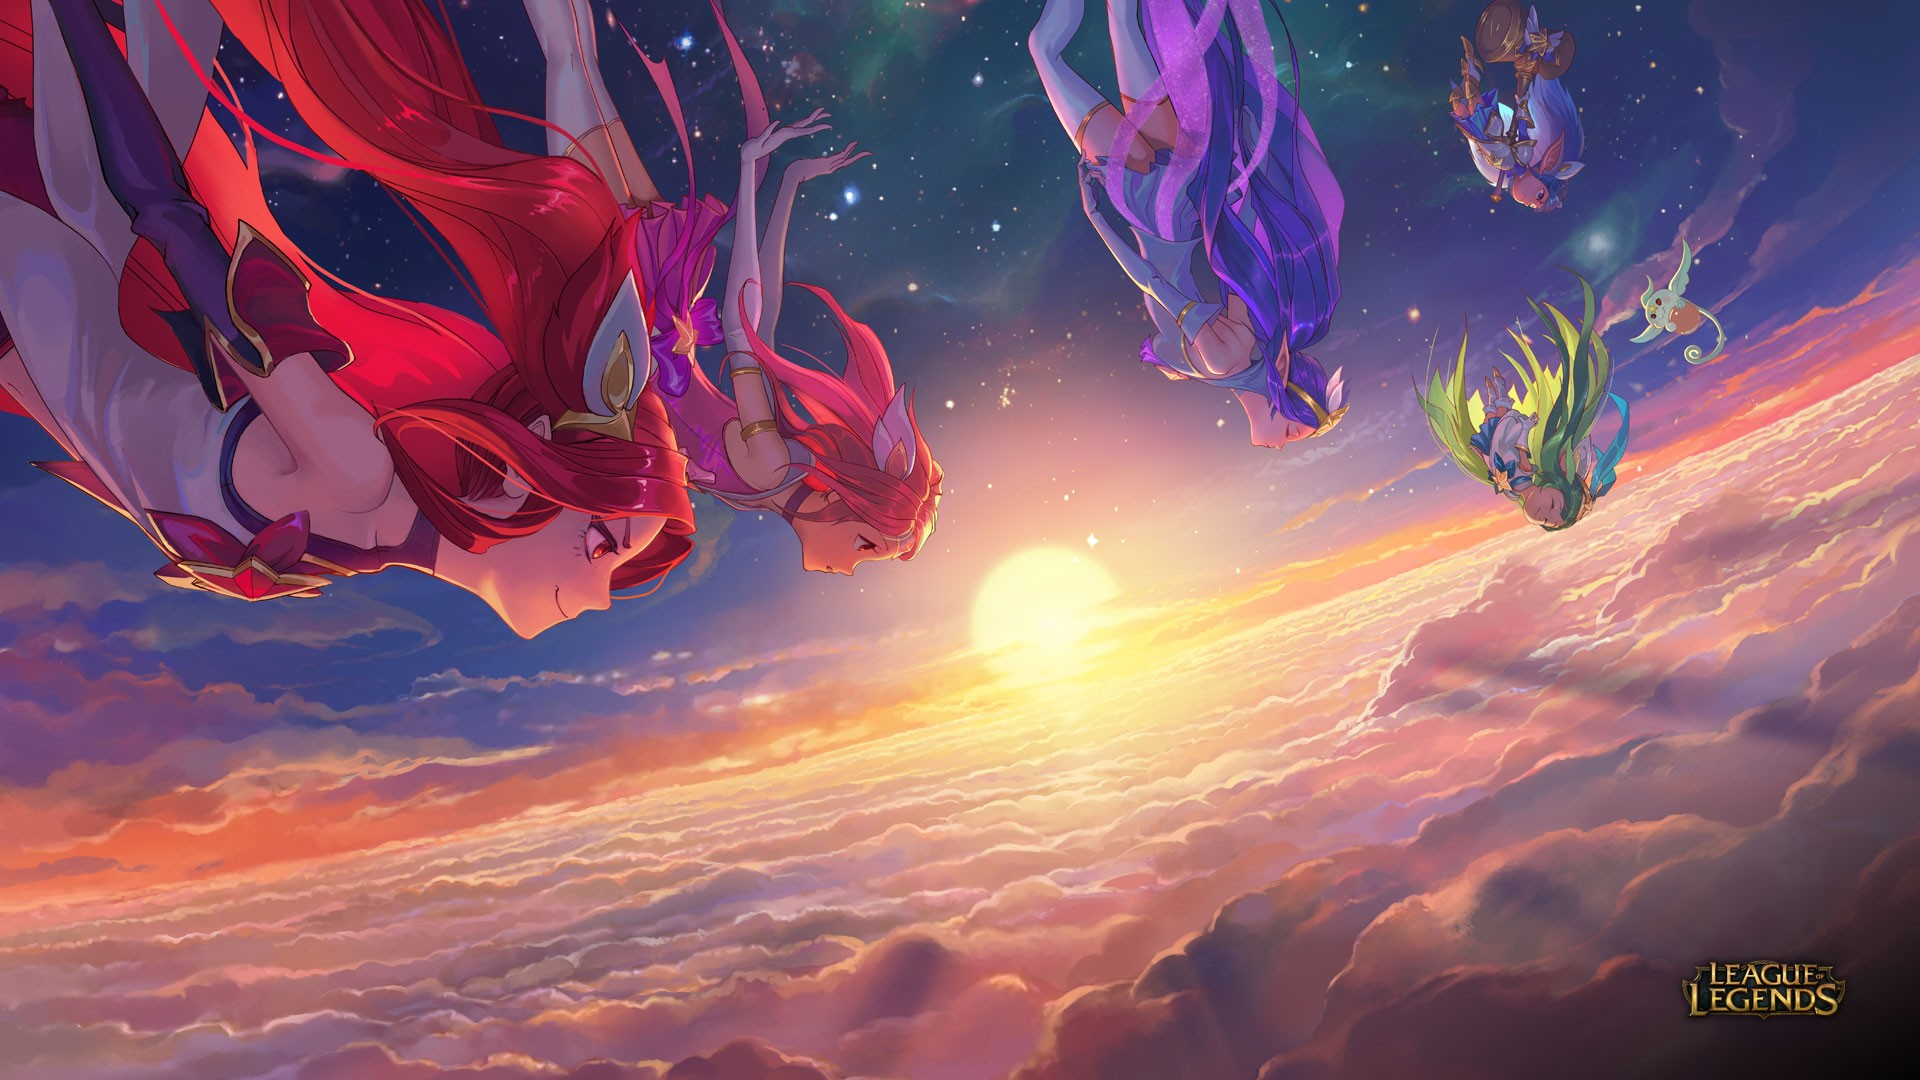 Star Guardian Wallpaper Download Free Beautiful High